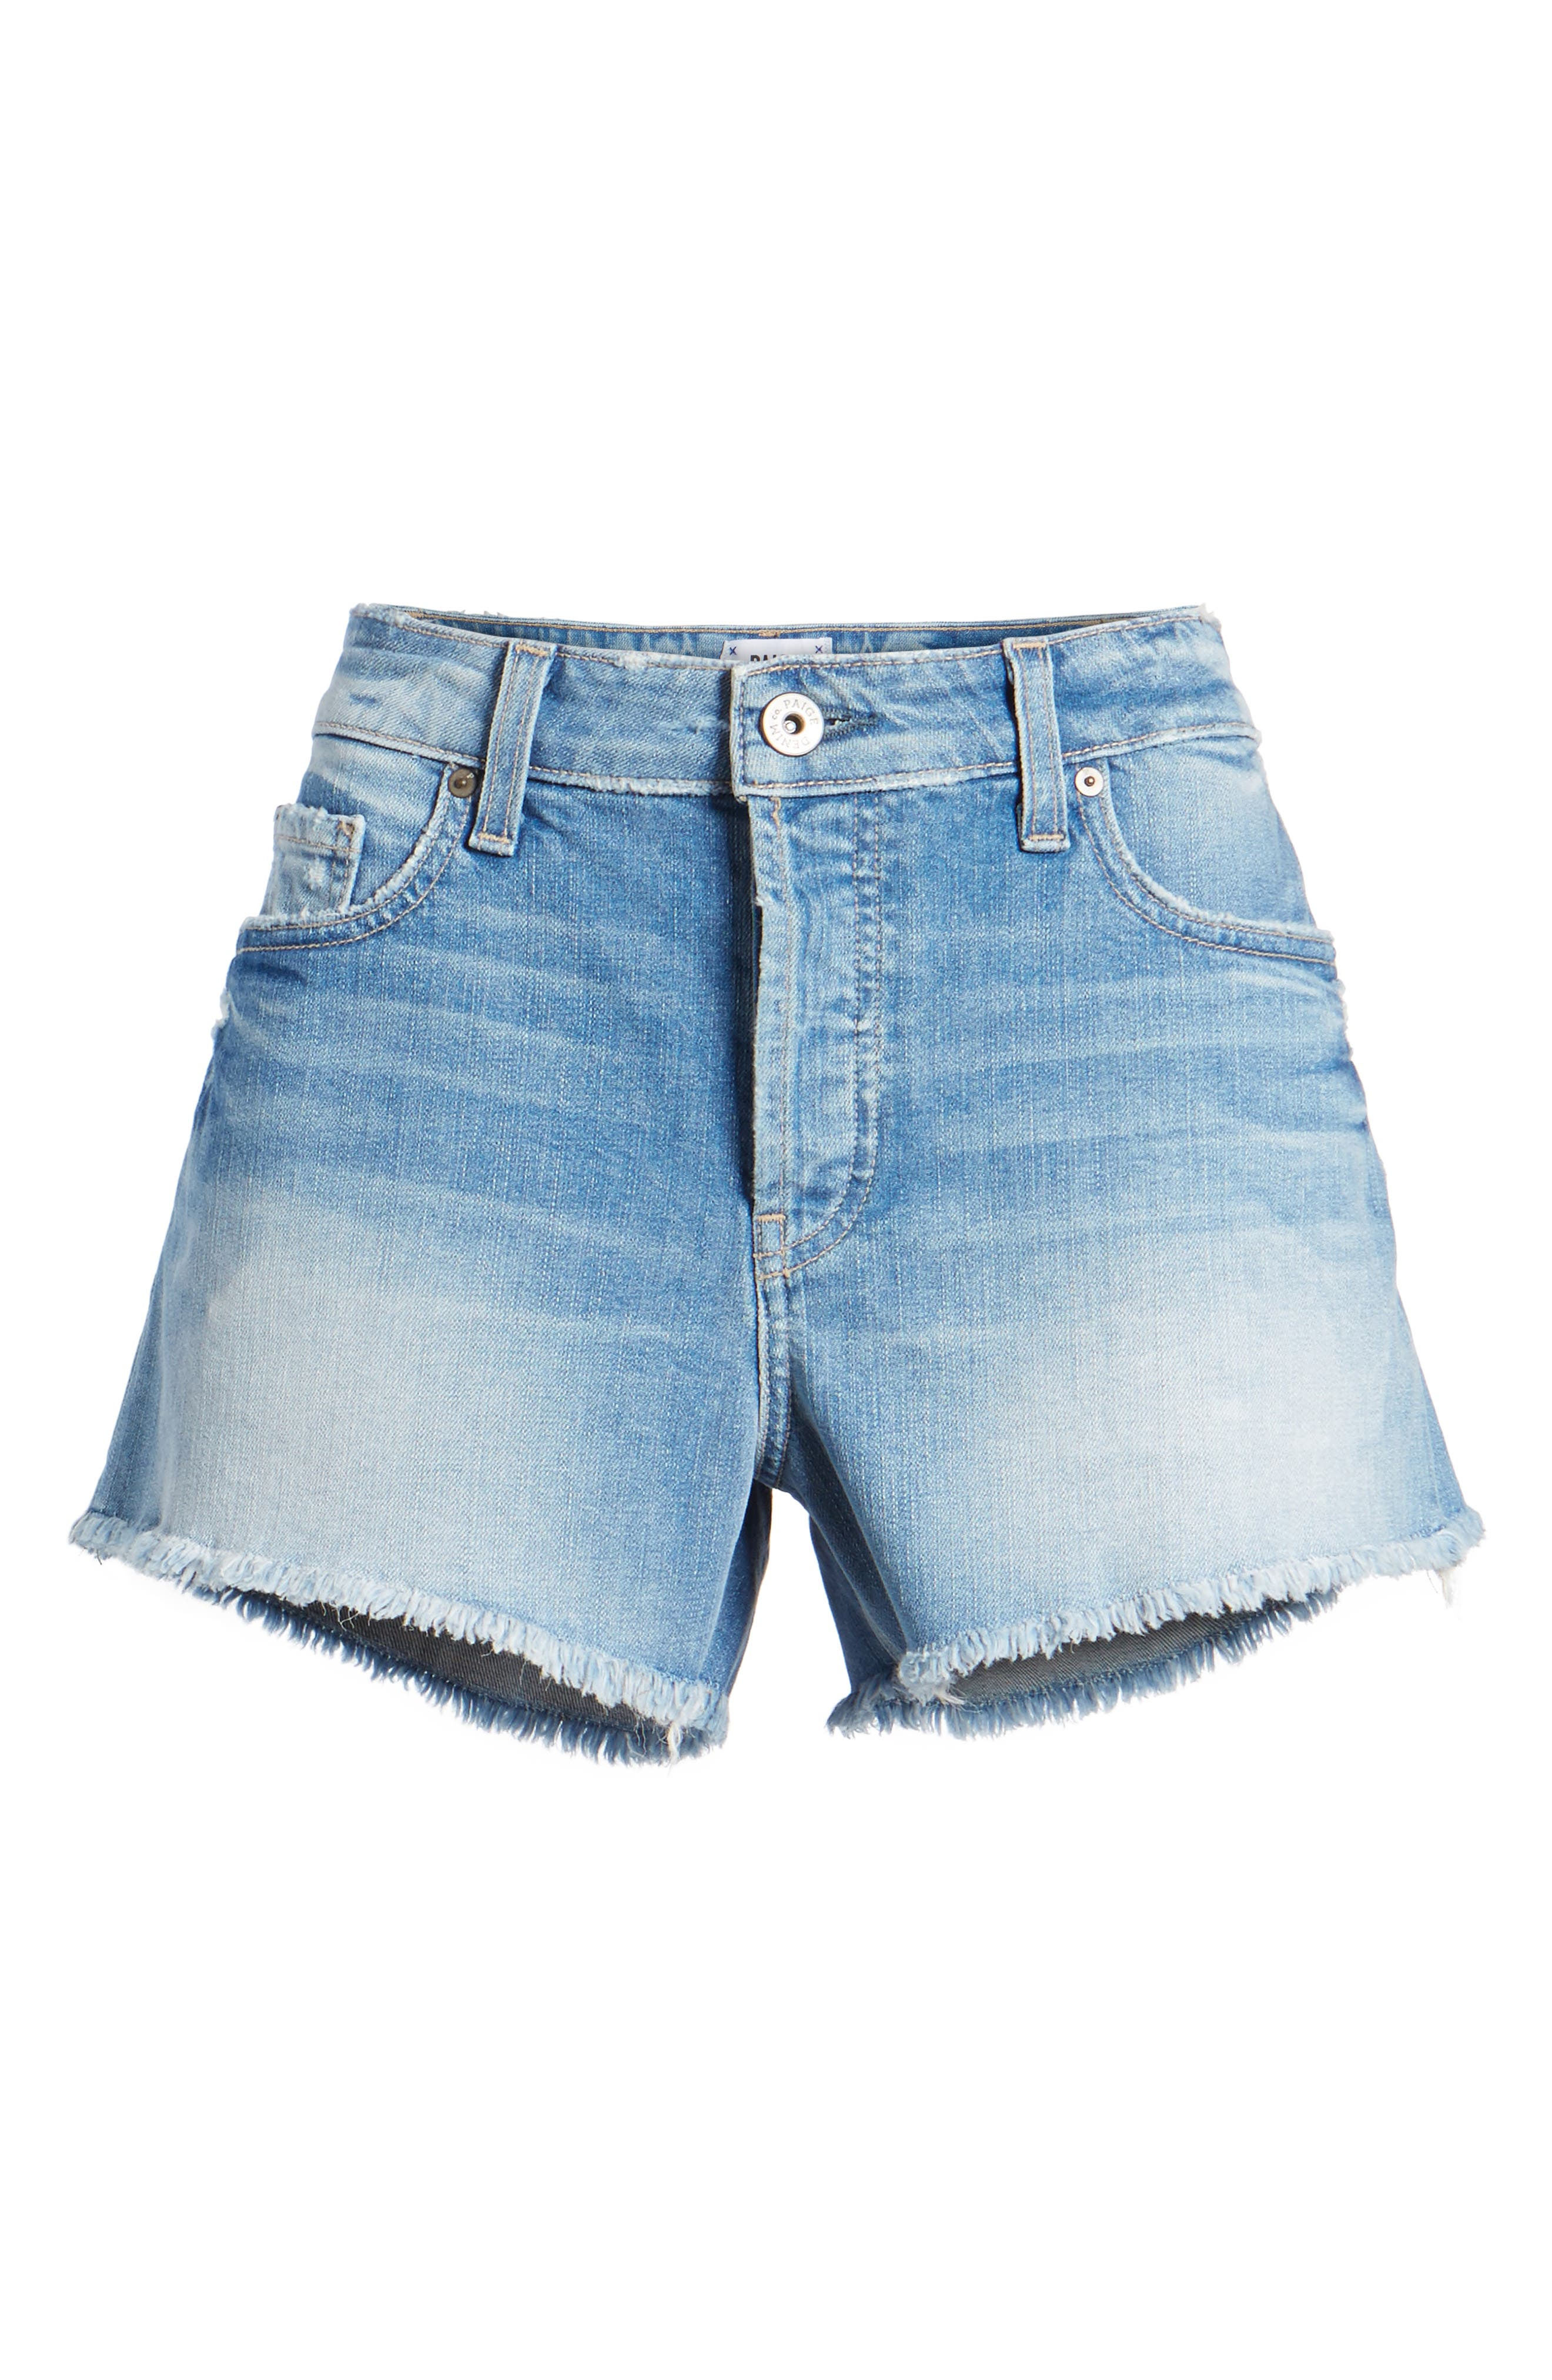 Emmitt High Waist Cutoff Denim Shorts,                             Alternate thumbnail 7, color,                             JANIS DESTRUCTED